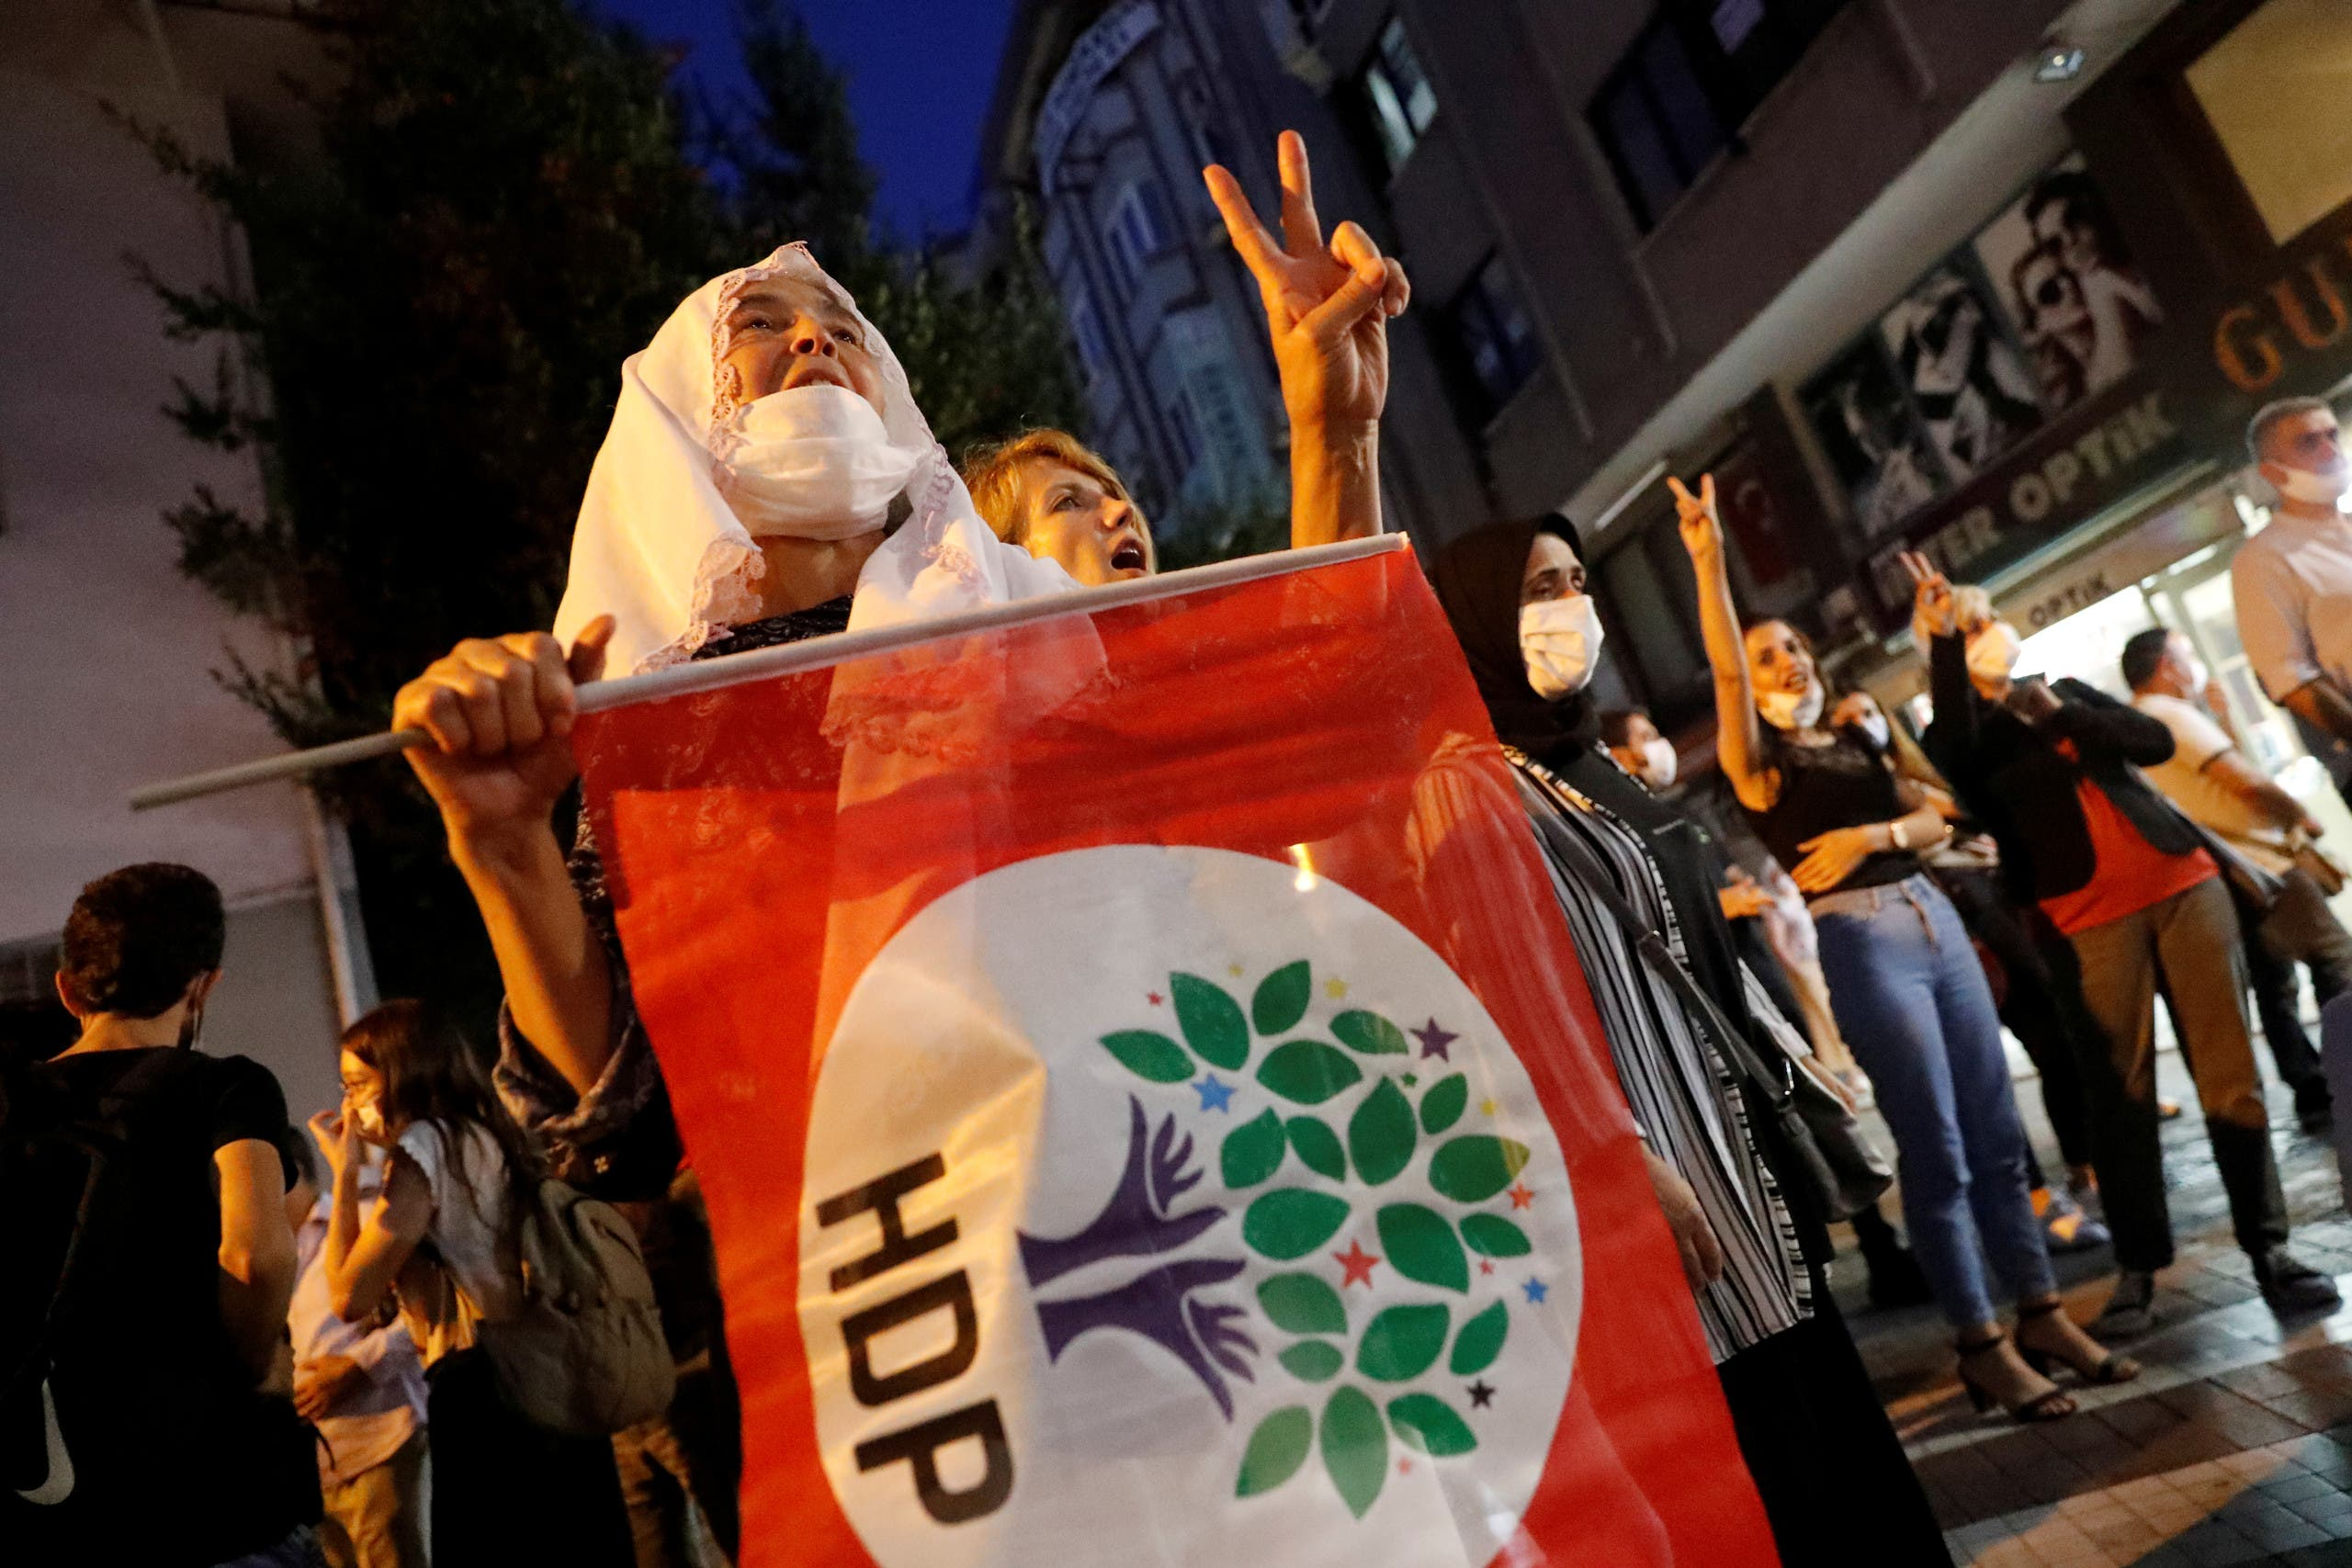 Supporters of pro-Kurdish Peoples Democratic Party (HDP) shout slogans during a protest against the arrest of 82 people including members of their party, in Istanbul, Turkey September 25, 2020. (Reuters/Murad Sezer)